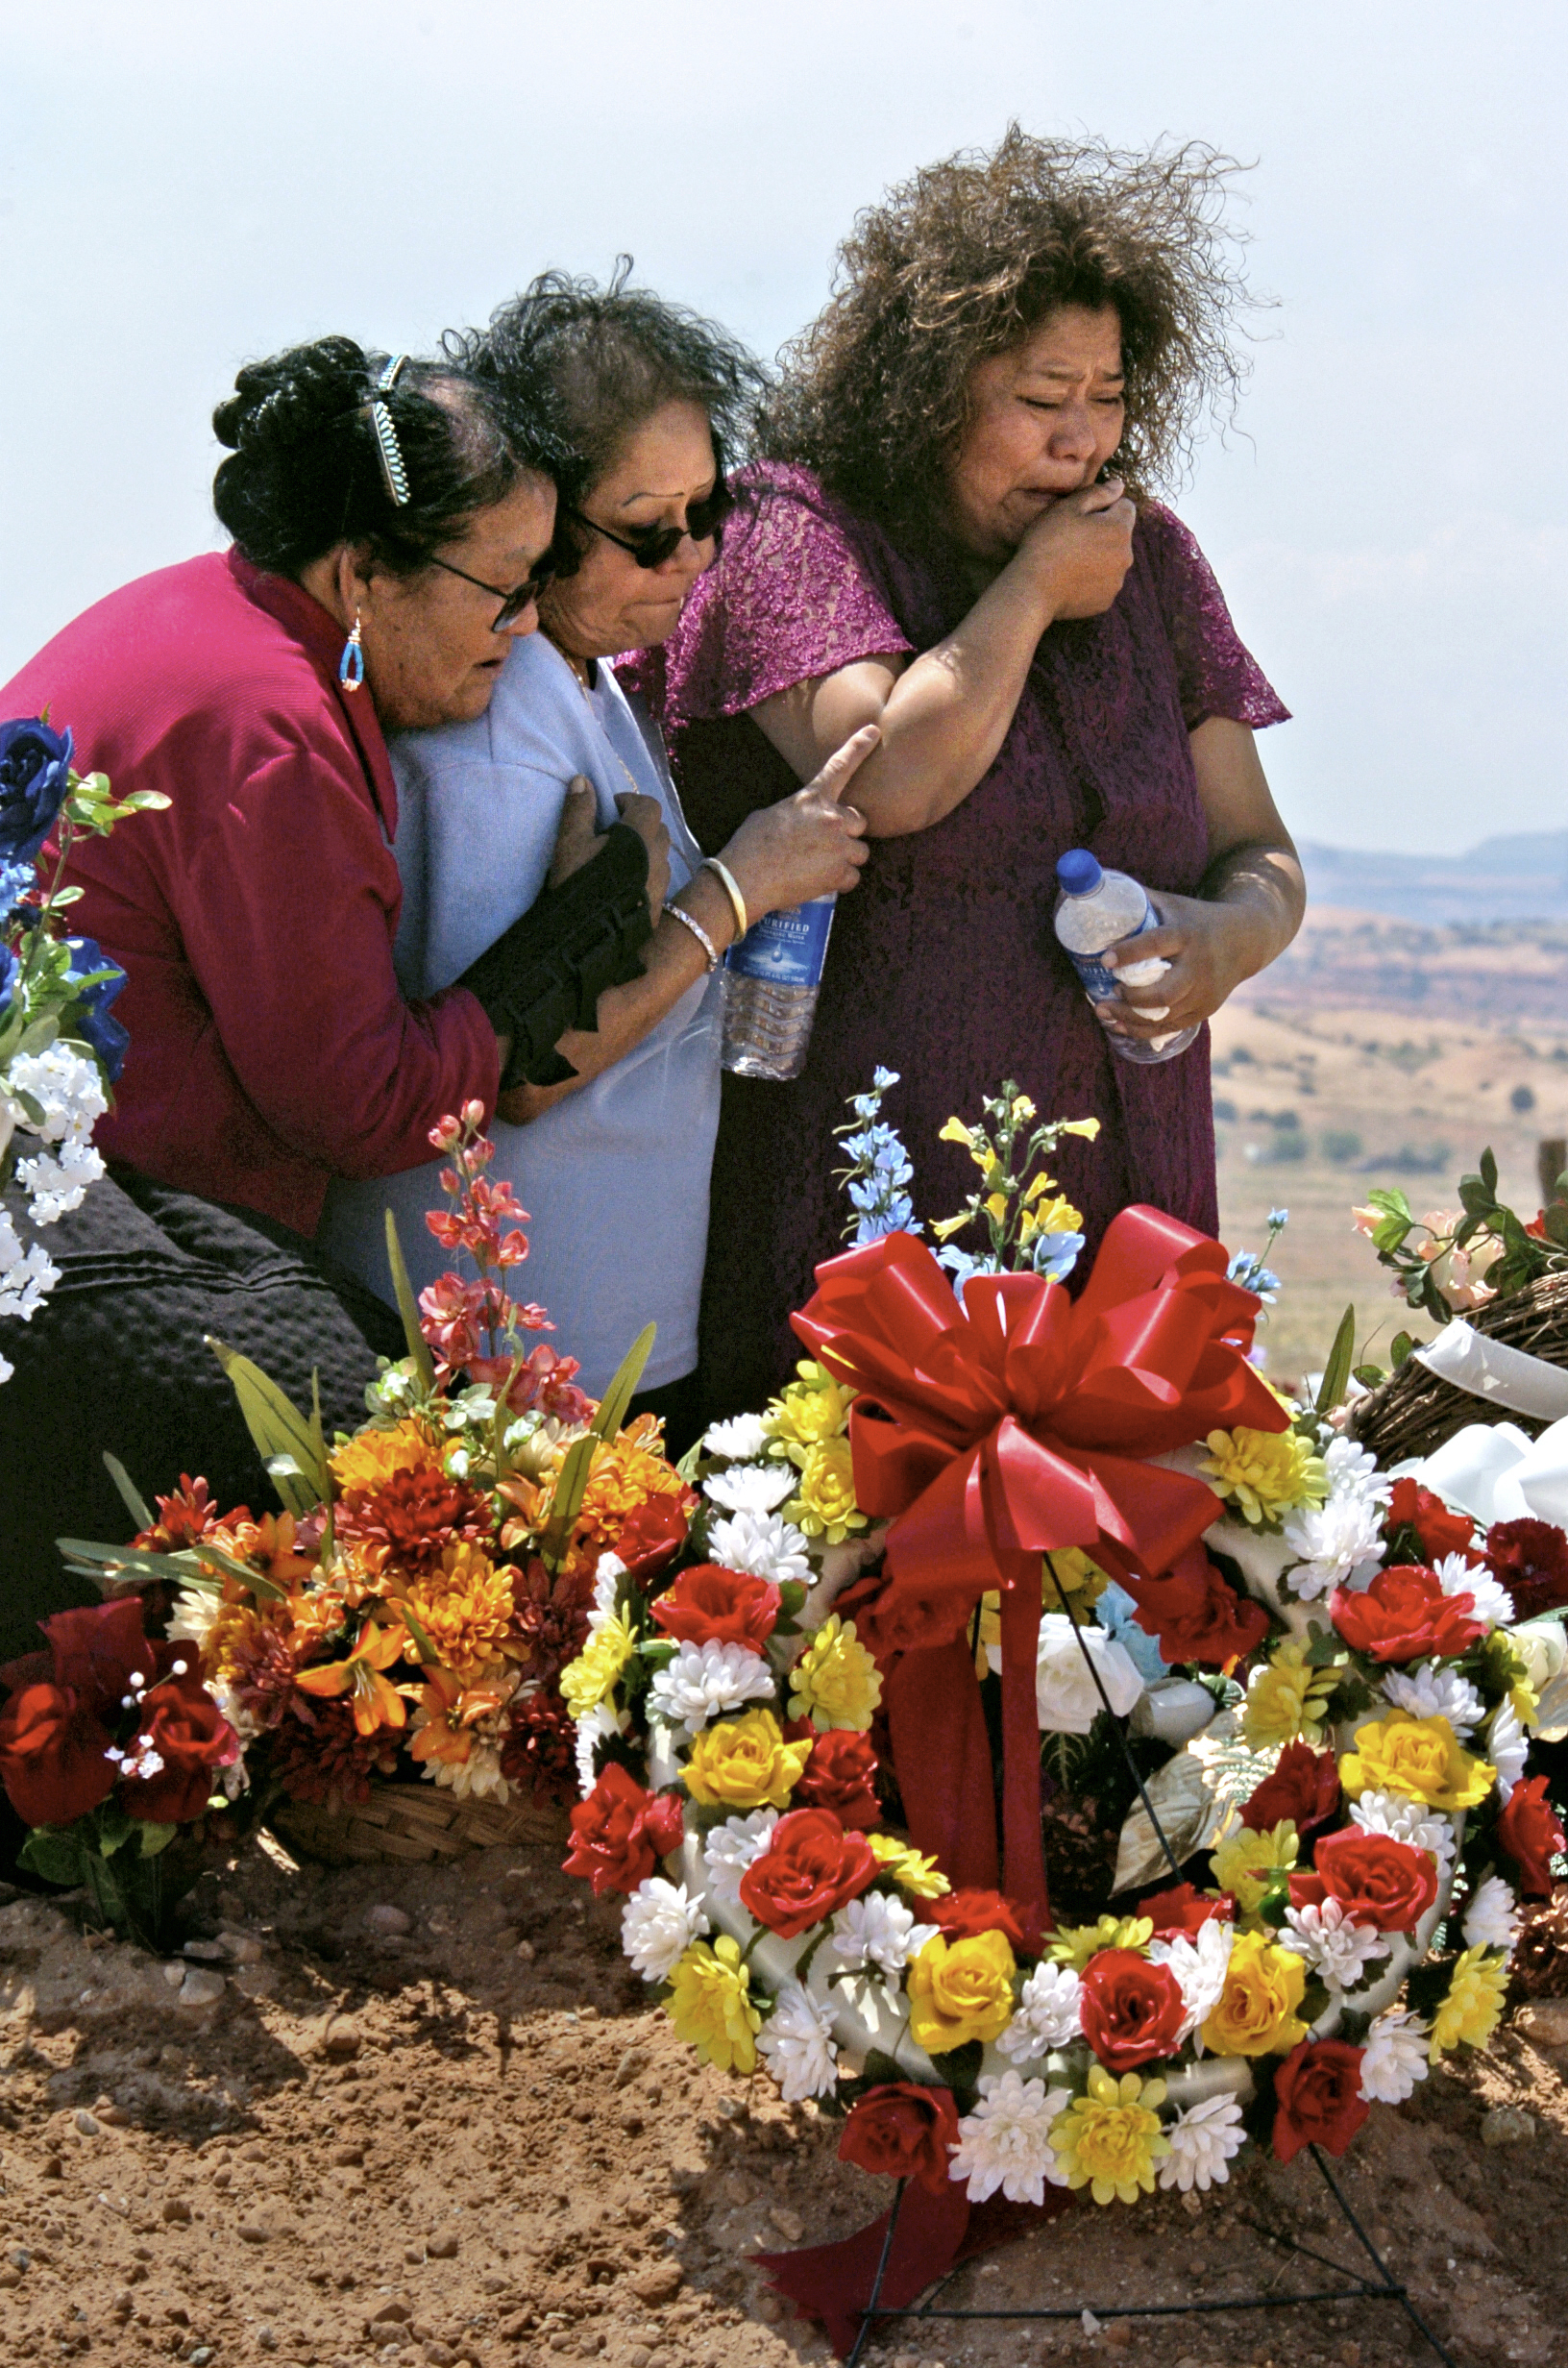 Family members grieve the death of Emerson Litson, a former uranium miner. Their angry widows wonder if they and their children face health risks fromthe abandoned mills and mines. ©Gail Fisher Los Angeles Times